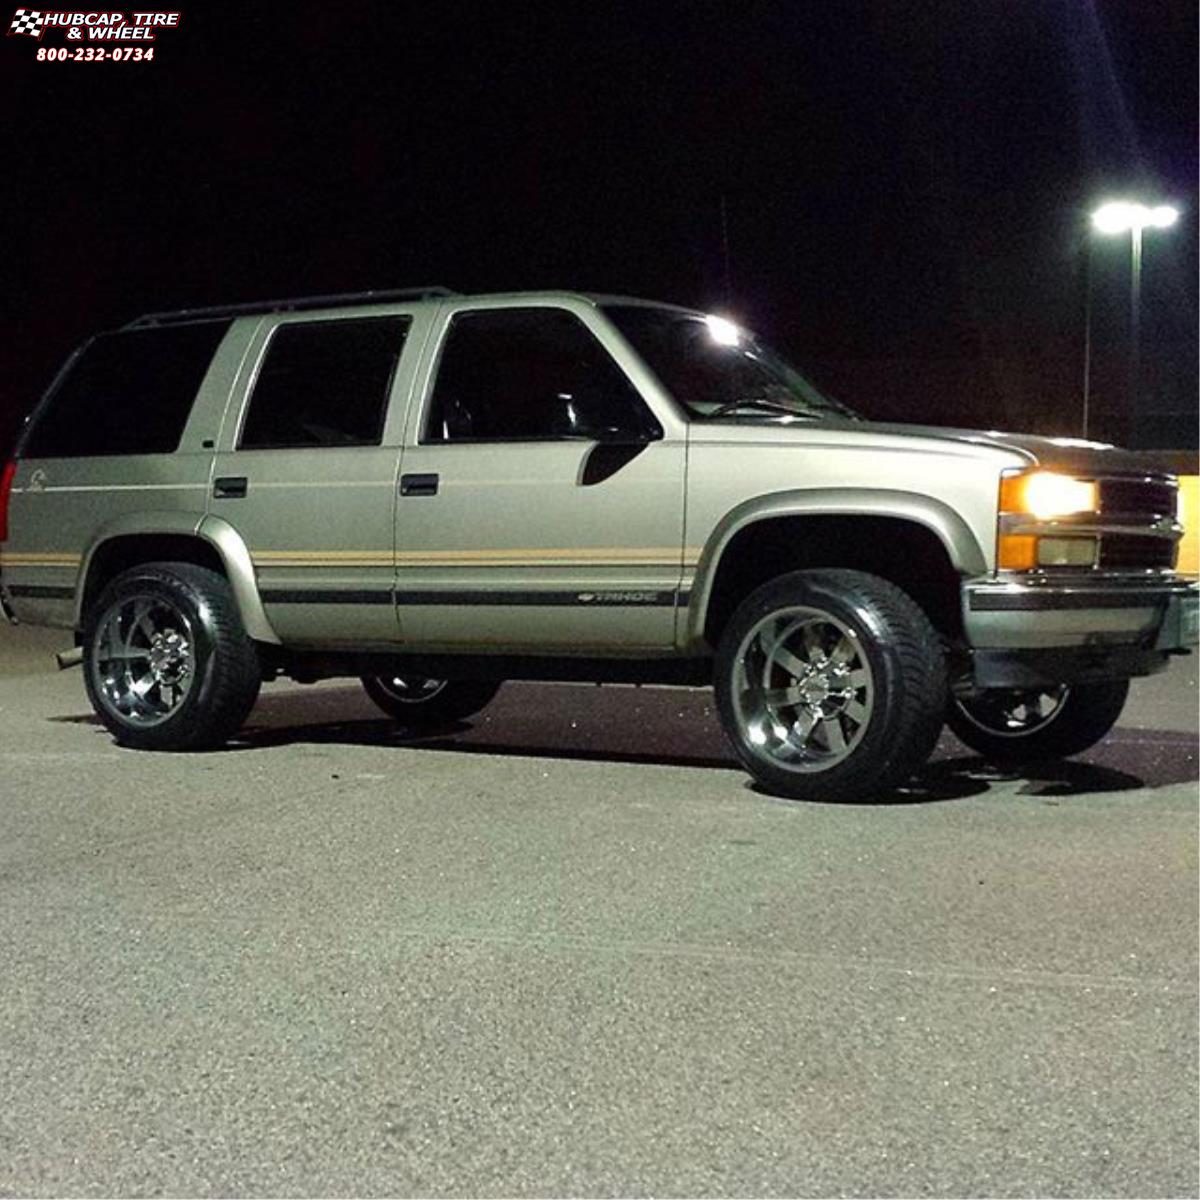 2016 Chevrolet Tahoe Review 19419209 additionally 05 Chevy Tahoe 9500 Chatsworth Ga 30705 05 Tahoe as well 19 in addition 03 together with 05. on chevy tahoe 22 inch rims